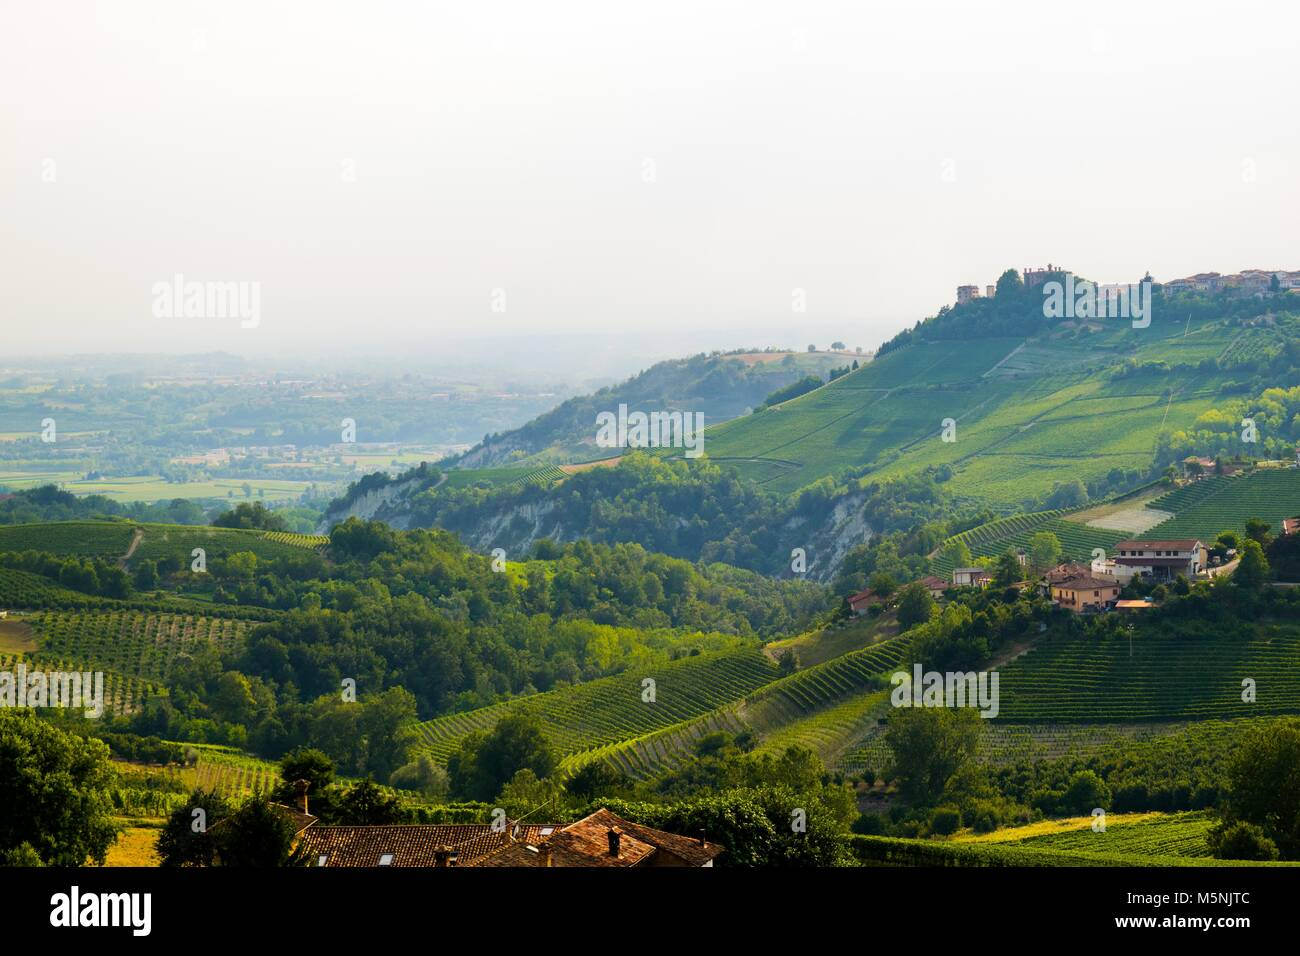 A beautiful outlook of the the Italian countryside near Monforte d'Alba. - Stock Image